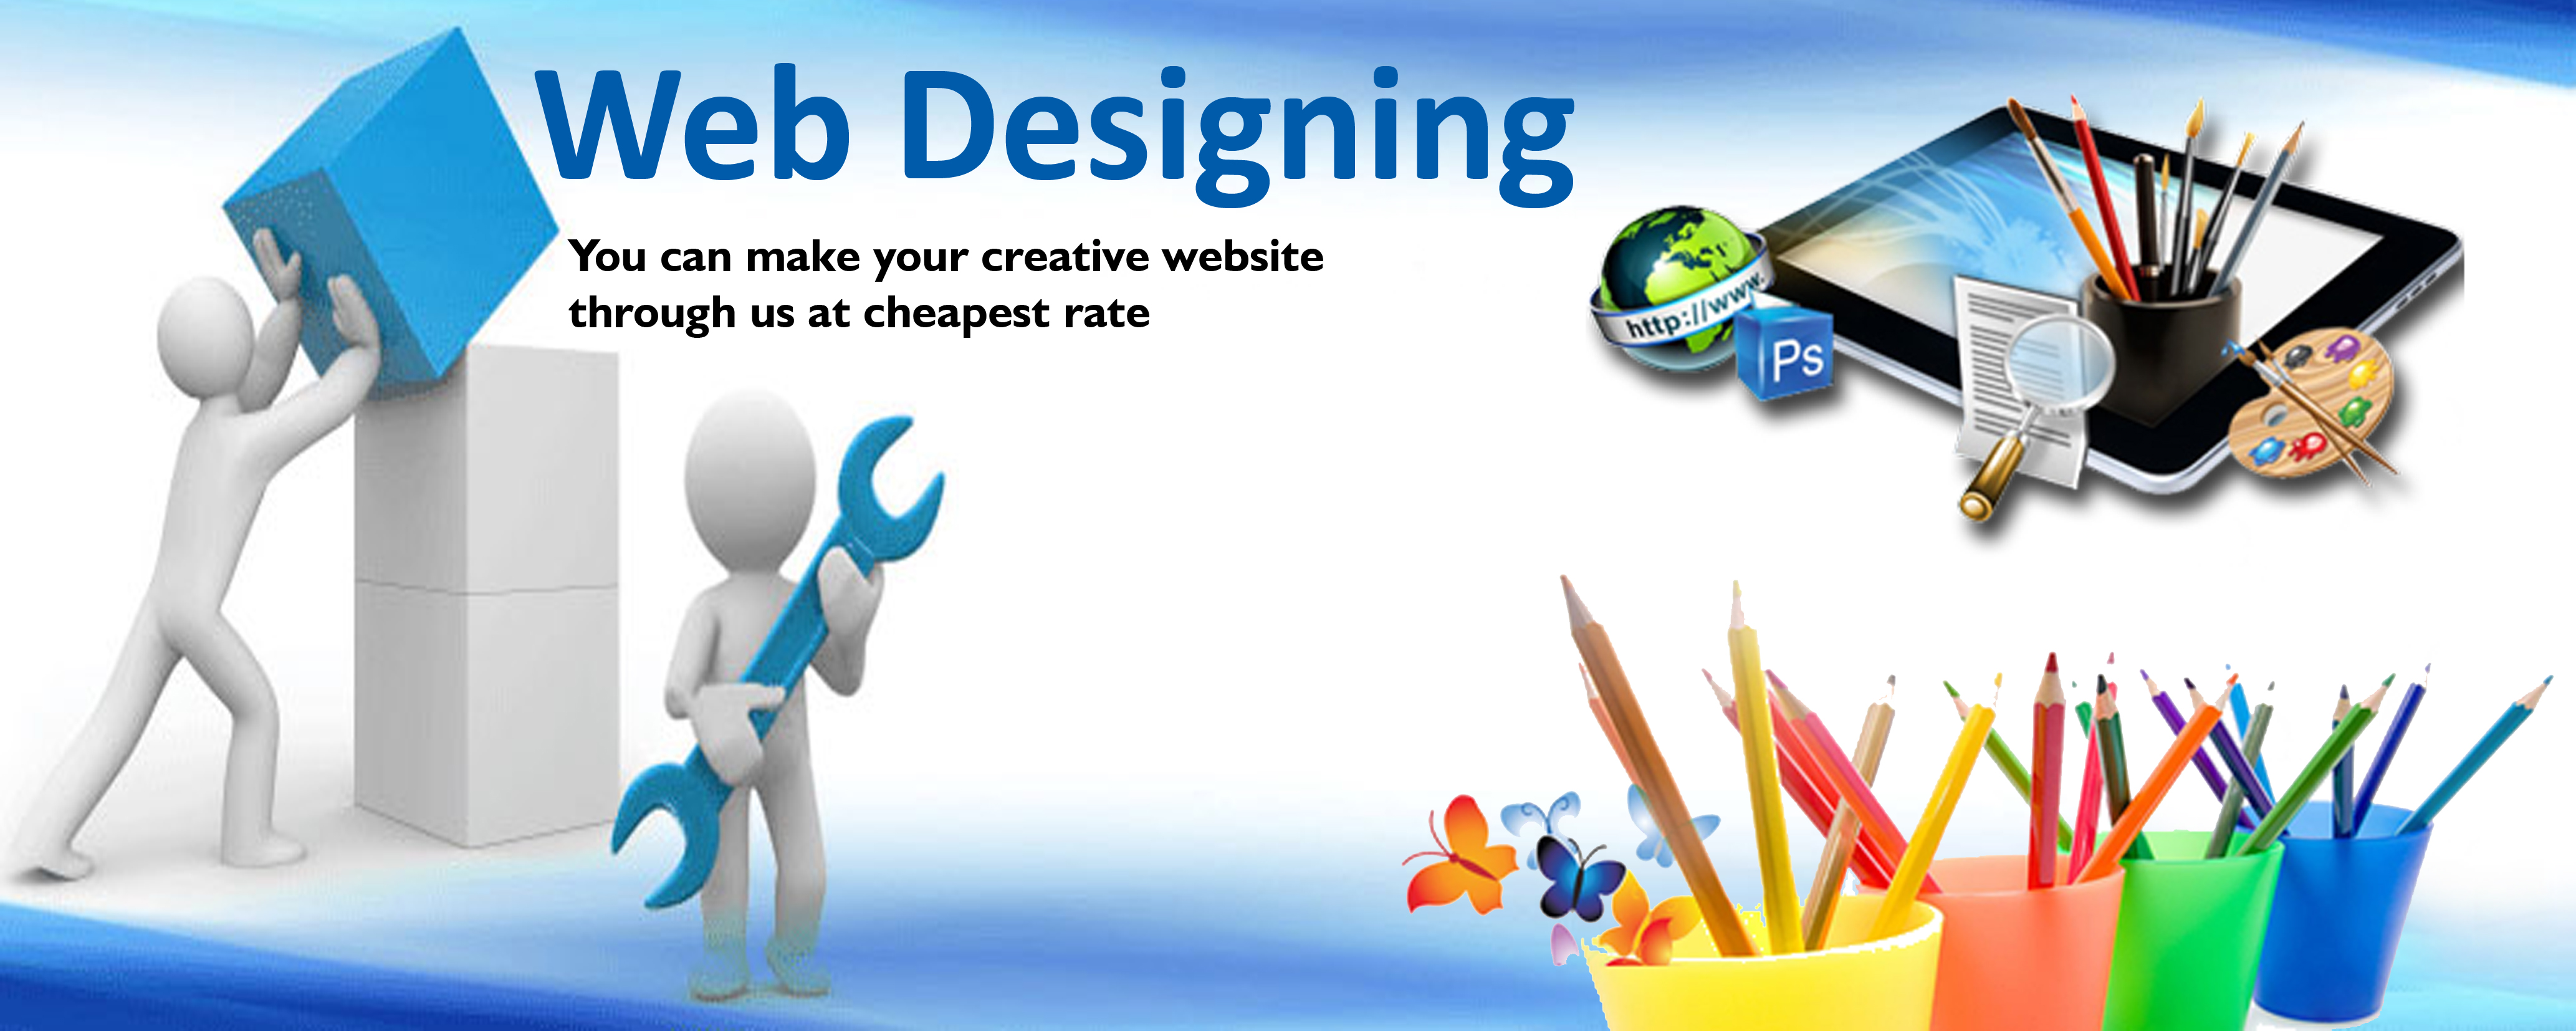 Cms Website Design Web Design Company Web Development Seo Company In Delhi Responsive Website